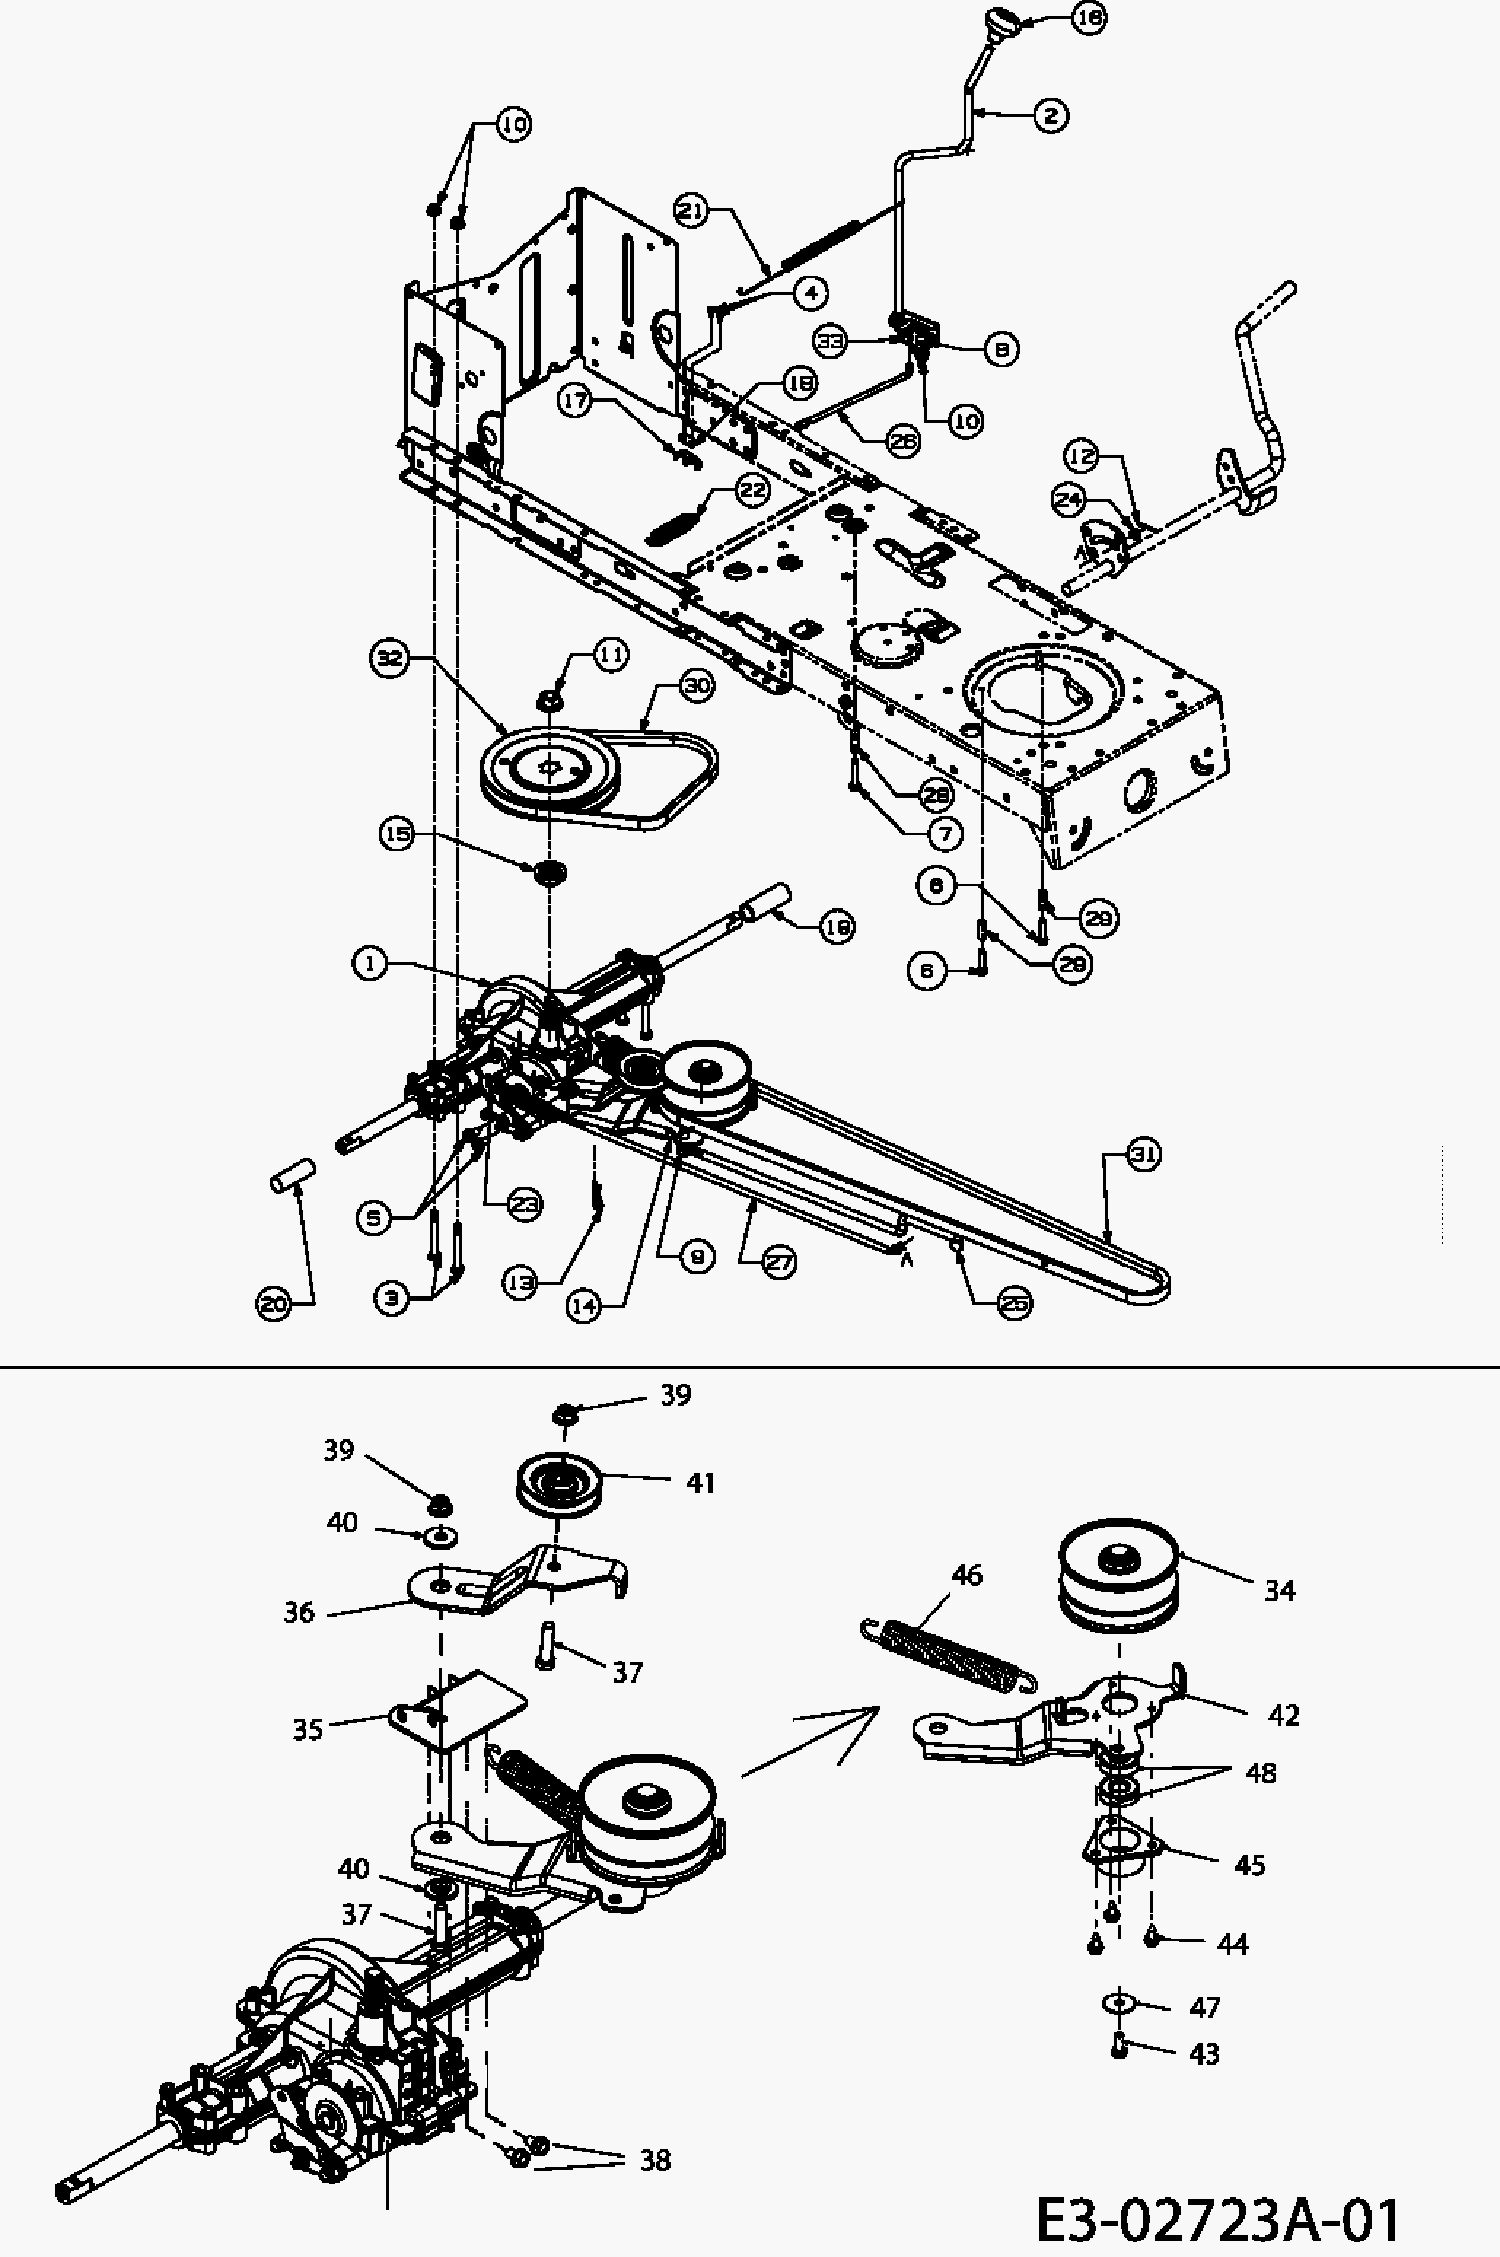 wiring diagram for craftsman riding lawn mower images mtd yard machine wiring diagram car